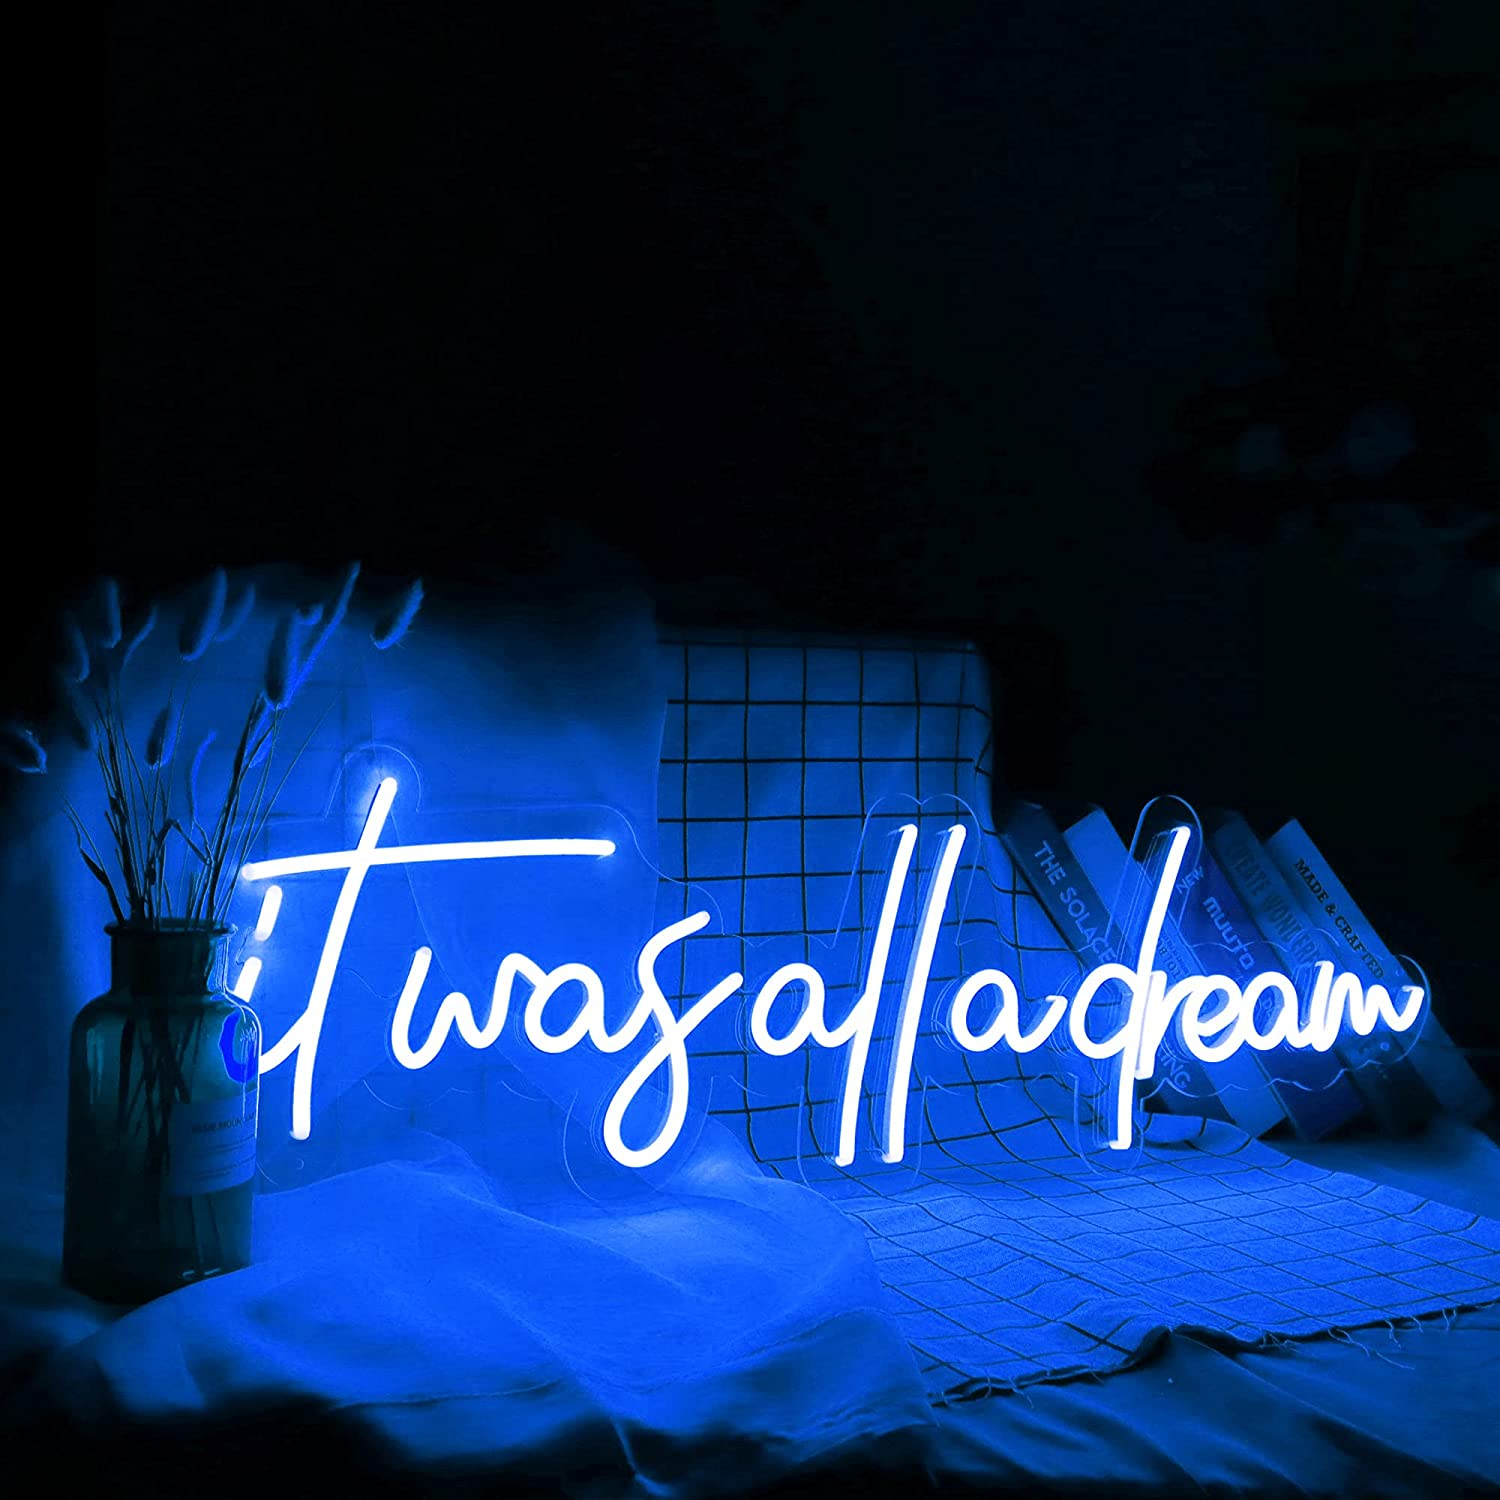 Mail order GYIODFU It was All A Dream Signs with Dimmable 36